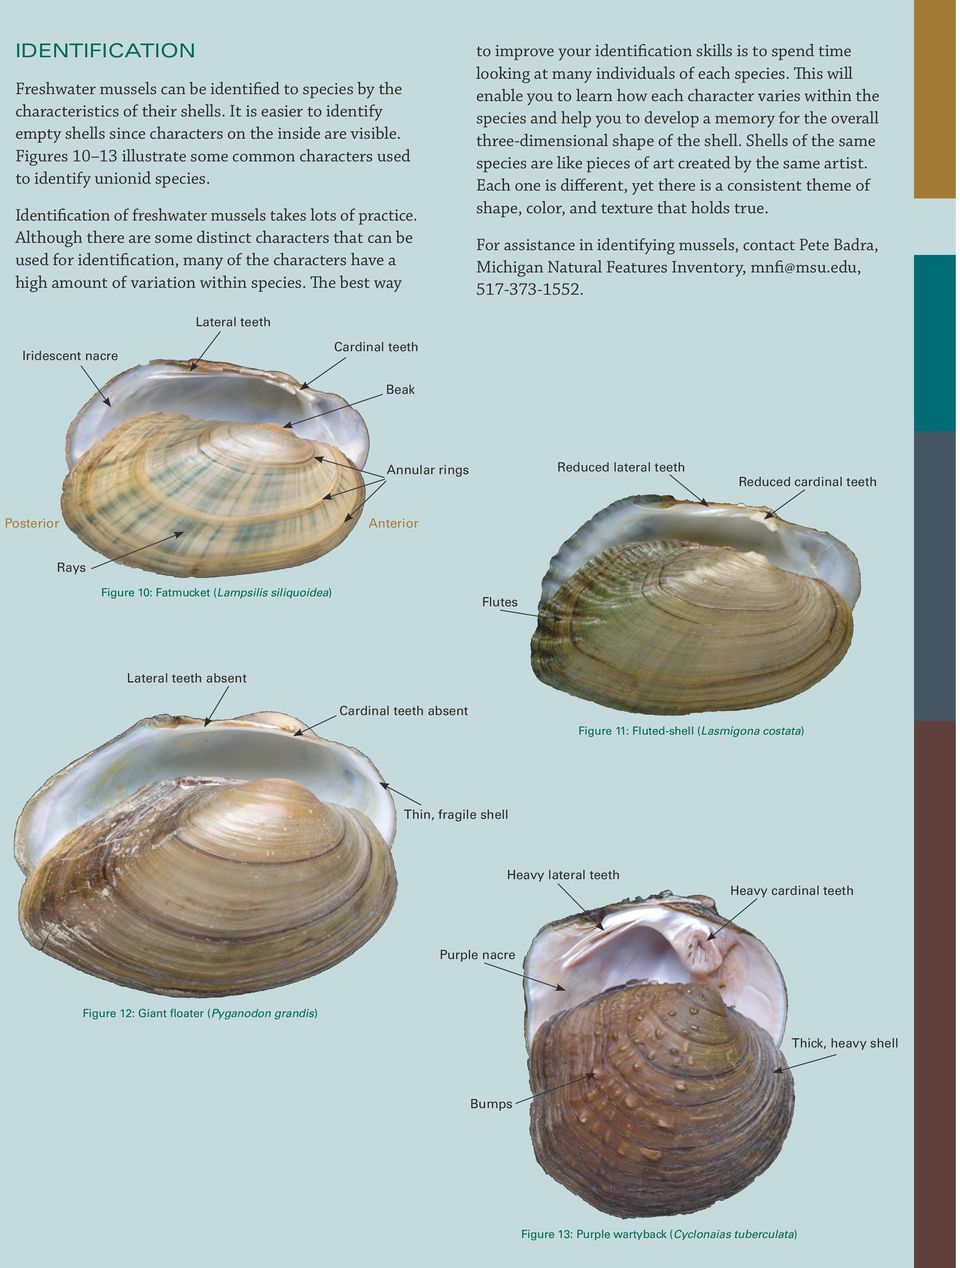 Shells of the same species are like pieces of art created by the same artist. Each one is different, yet there is a consistent theme of shape, color, and texture that holds true.